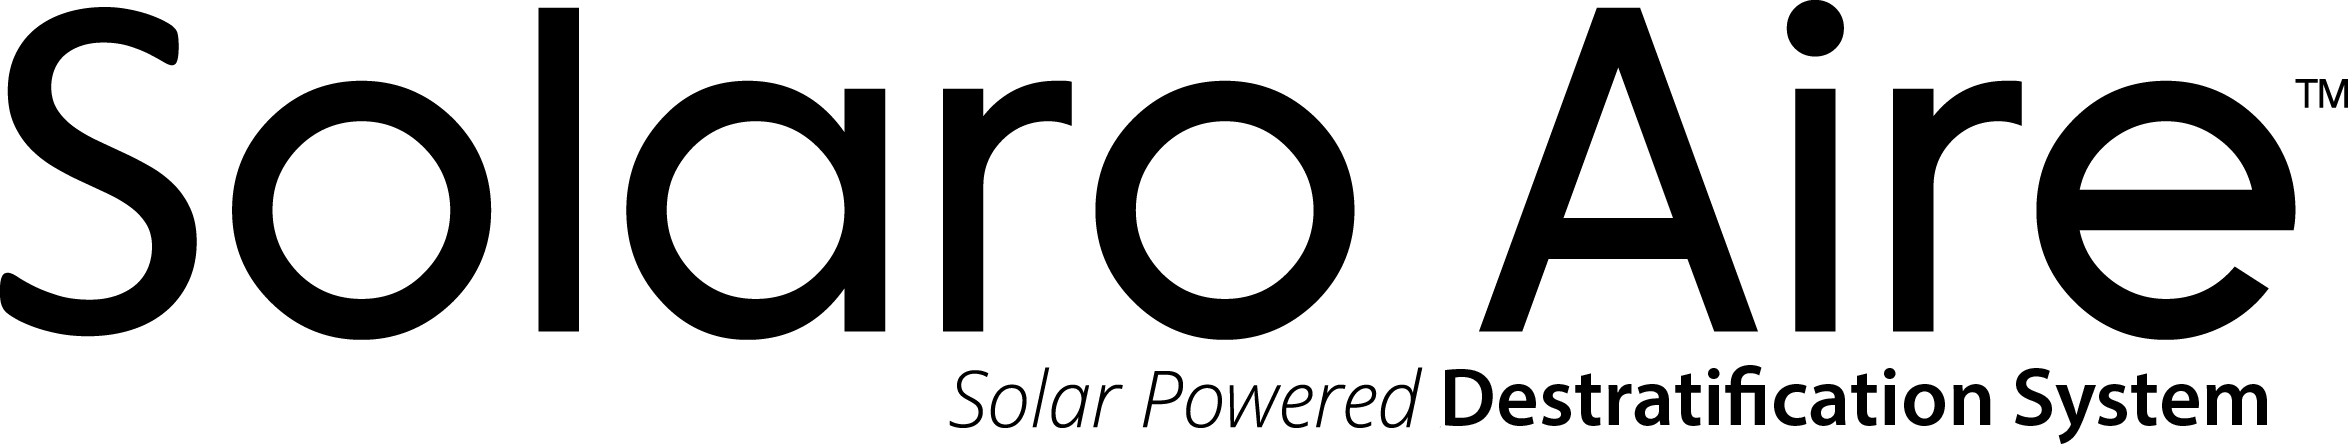 Solaro Air, Solar Powered, Destratification System. The Solaro Energy Destratification system will help destratify the air of your home or warehouse.